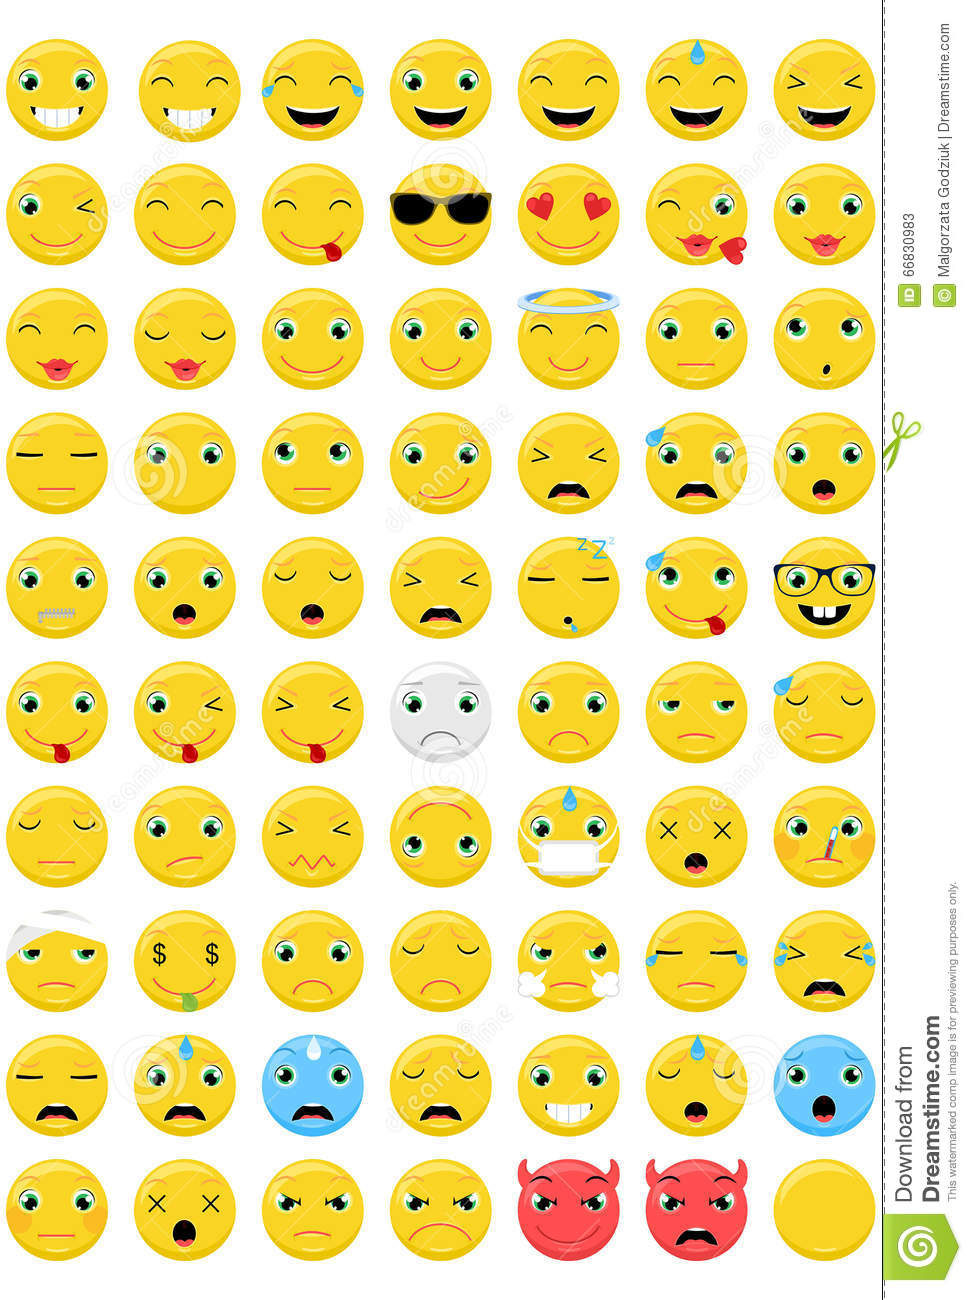 Emoticon Dictionaryooo  Android Apps on Google Play